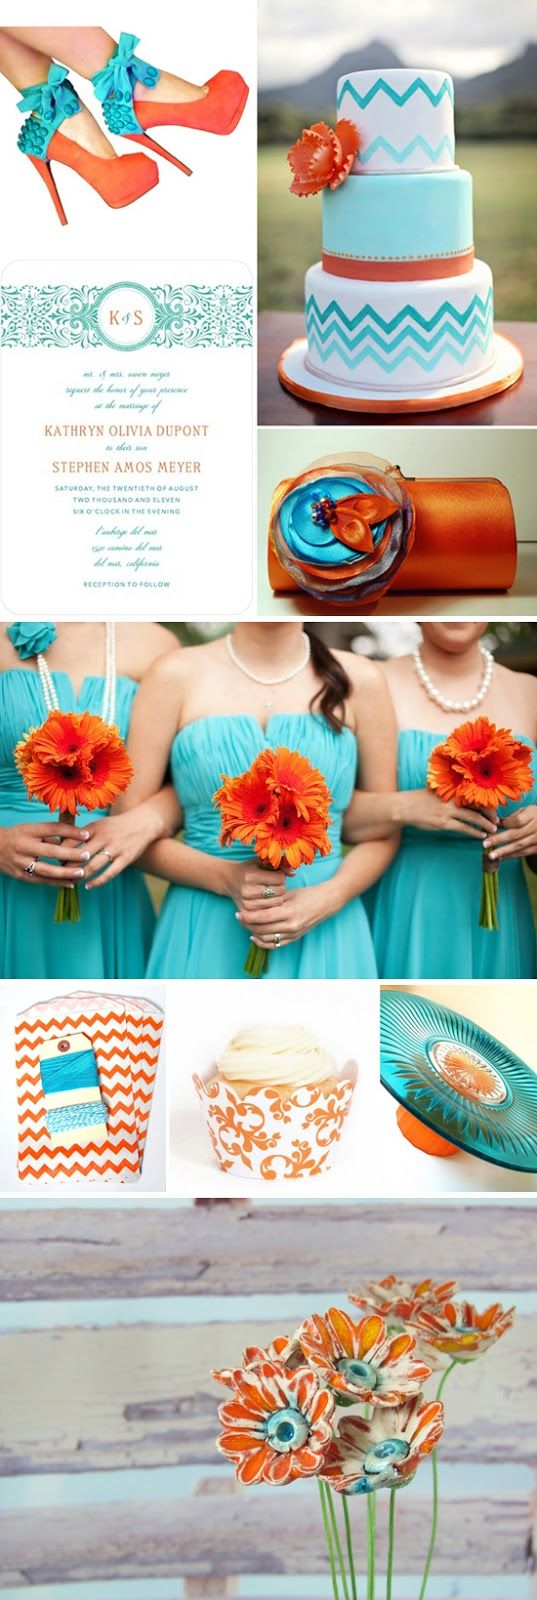 Inspiration Boards Turquoise Orange Savvy Deets Bridal A Wedding Blog